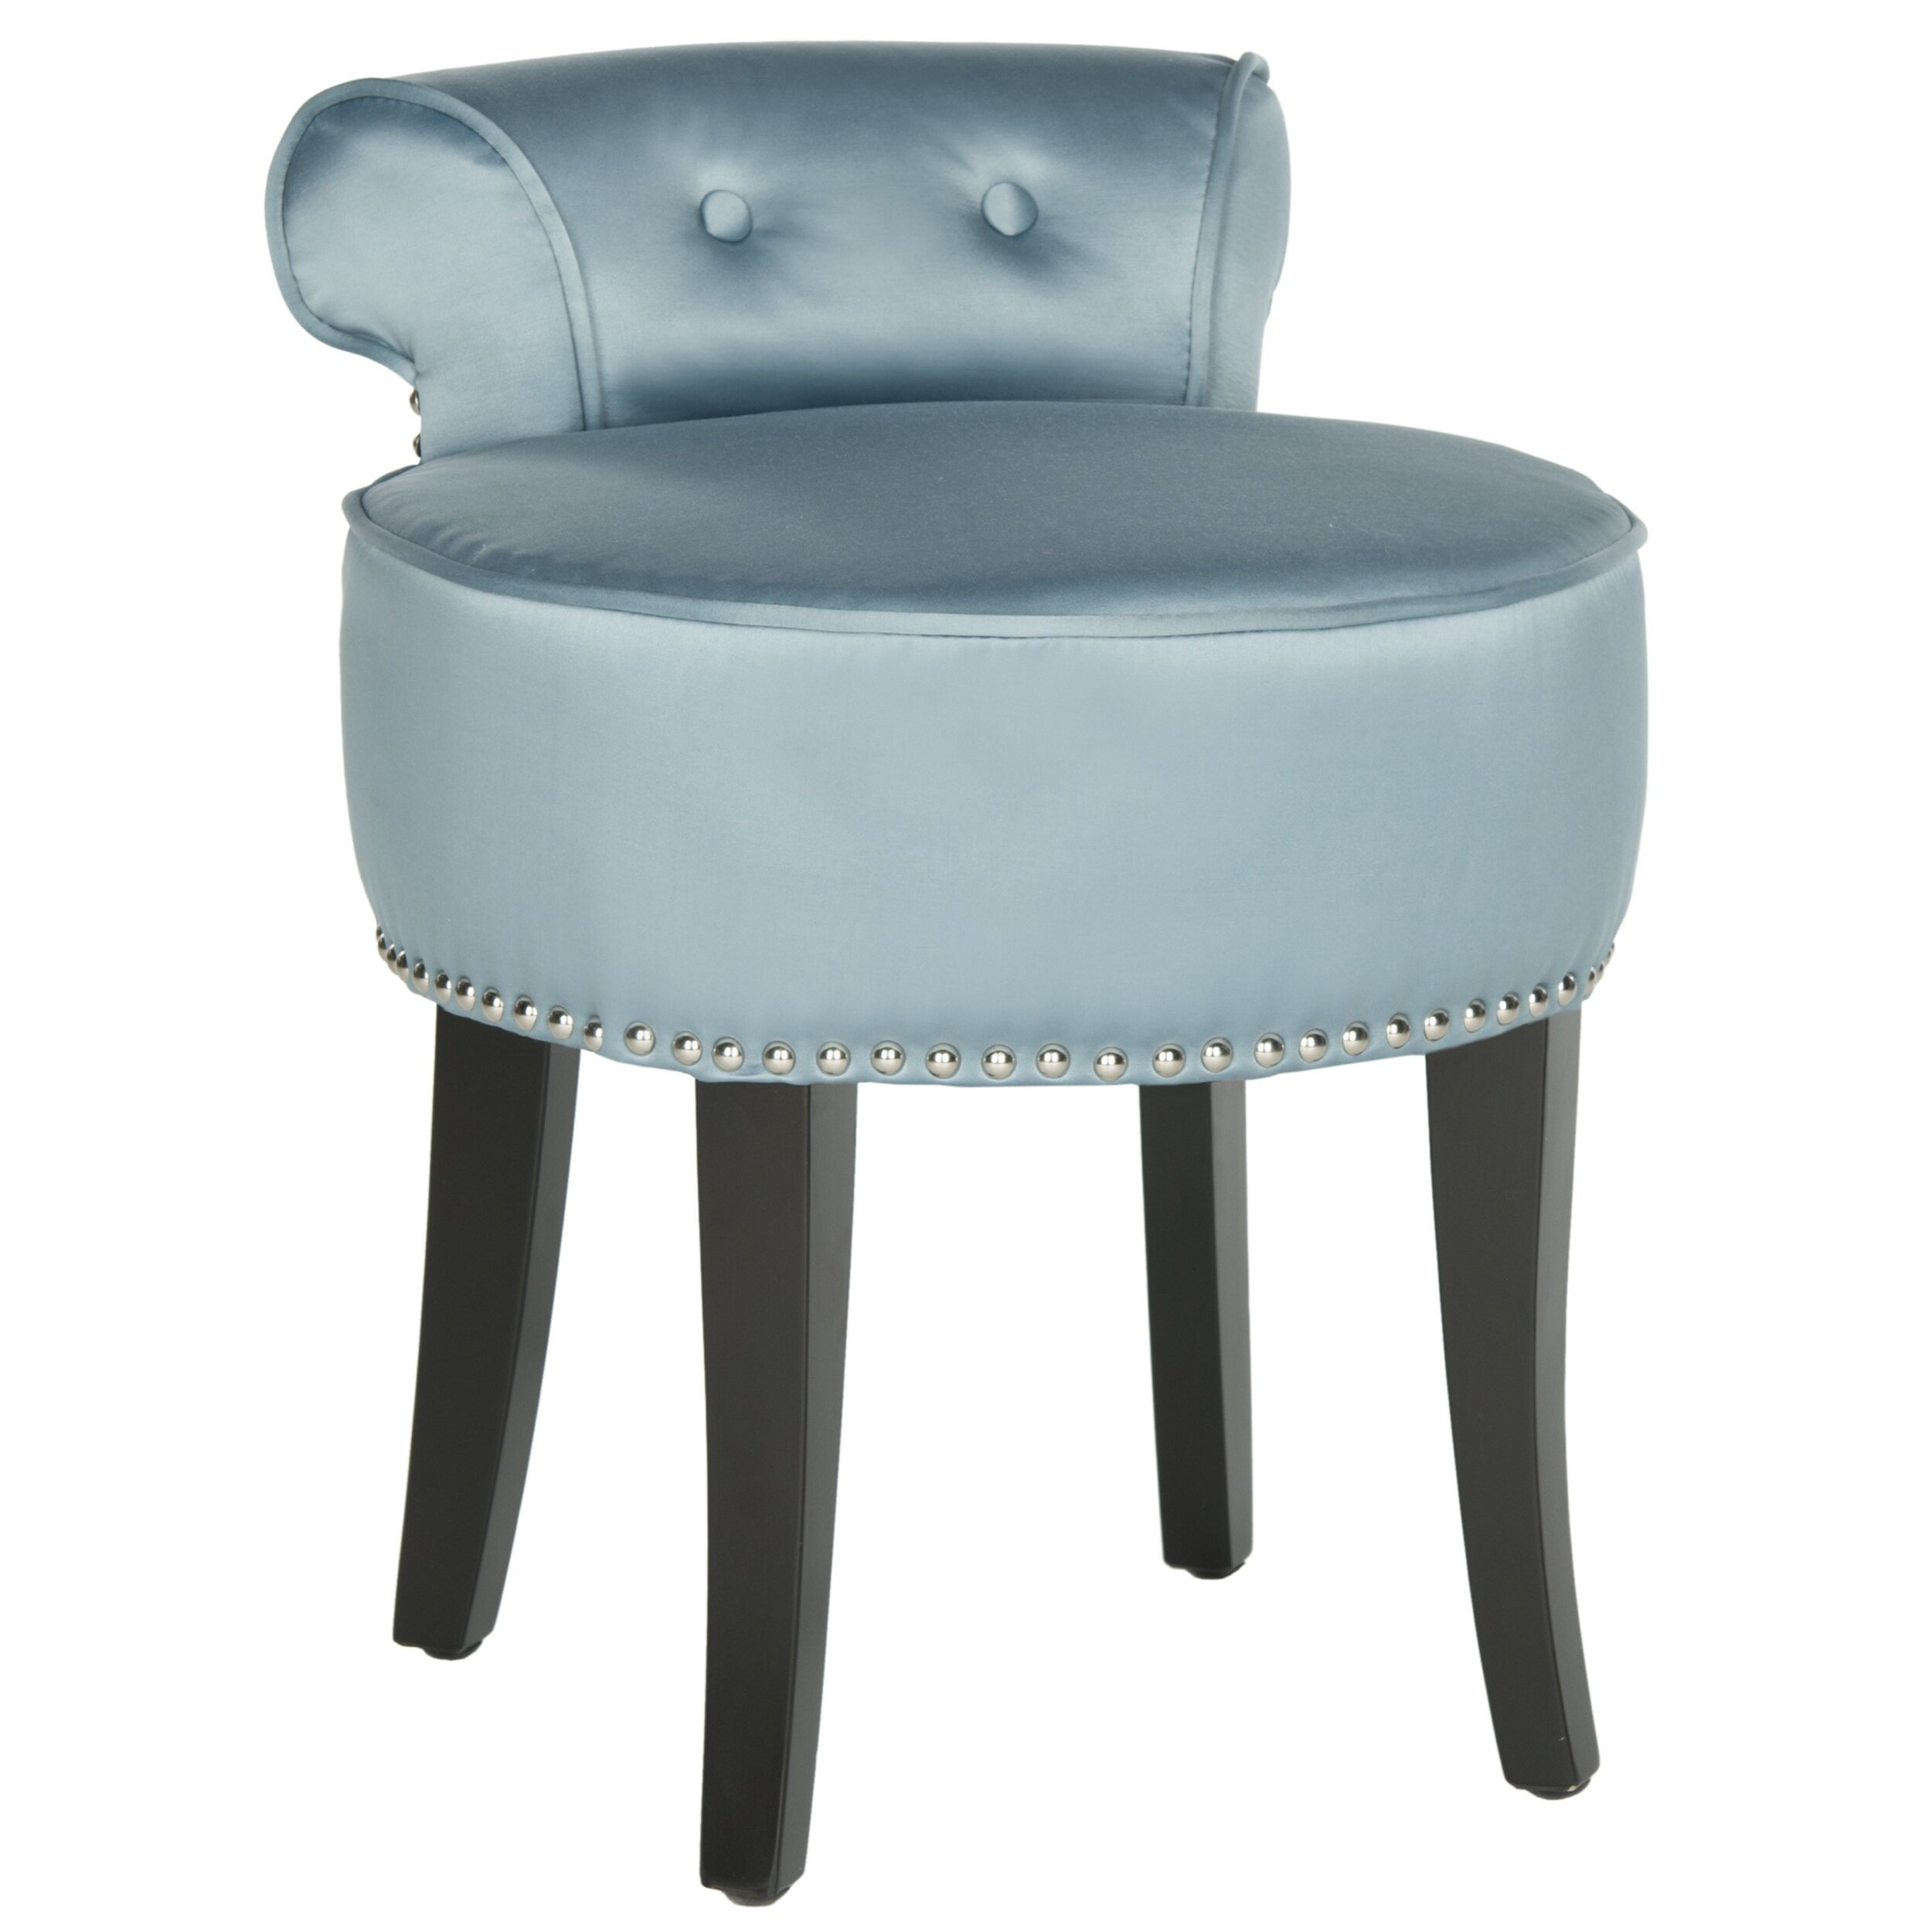 Safavieh Georgia Vanity Stool amp Reviews Wayfair : Safavieh Georgia Vanity Stool MCR4546S from www.wayfair.com size 2500 x 2500 jpeg 405kB